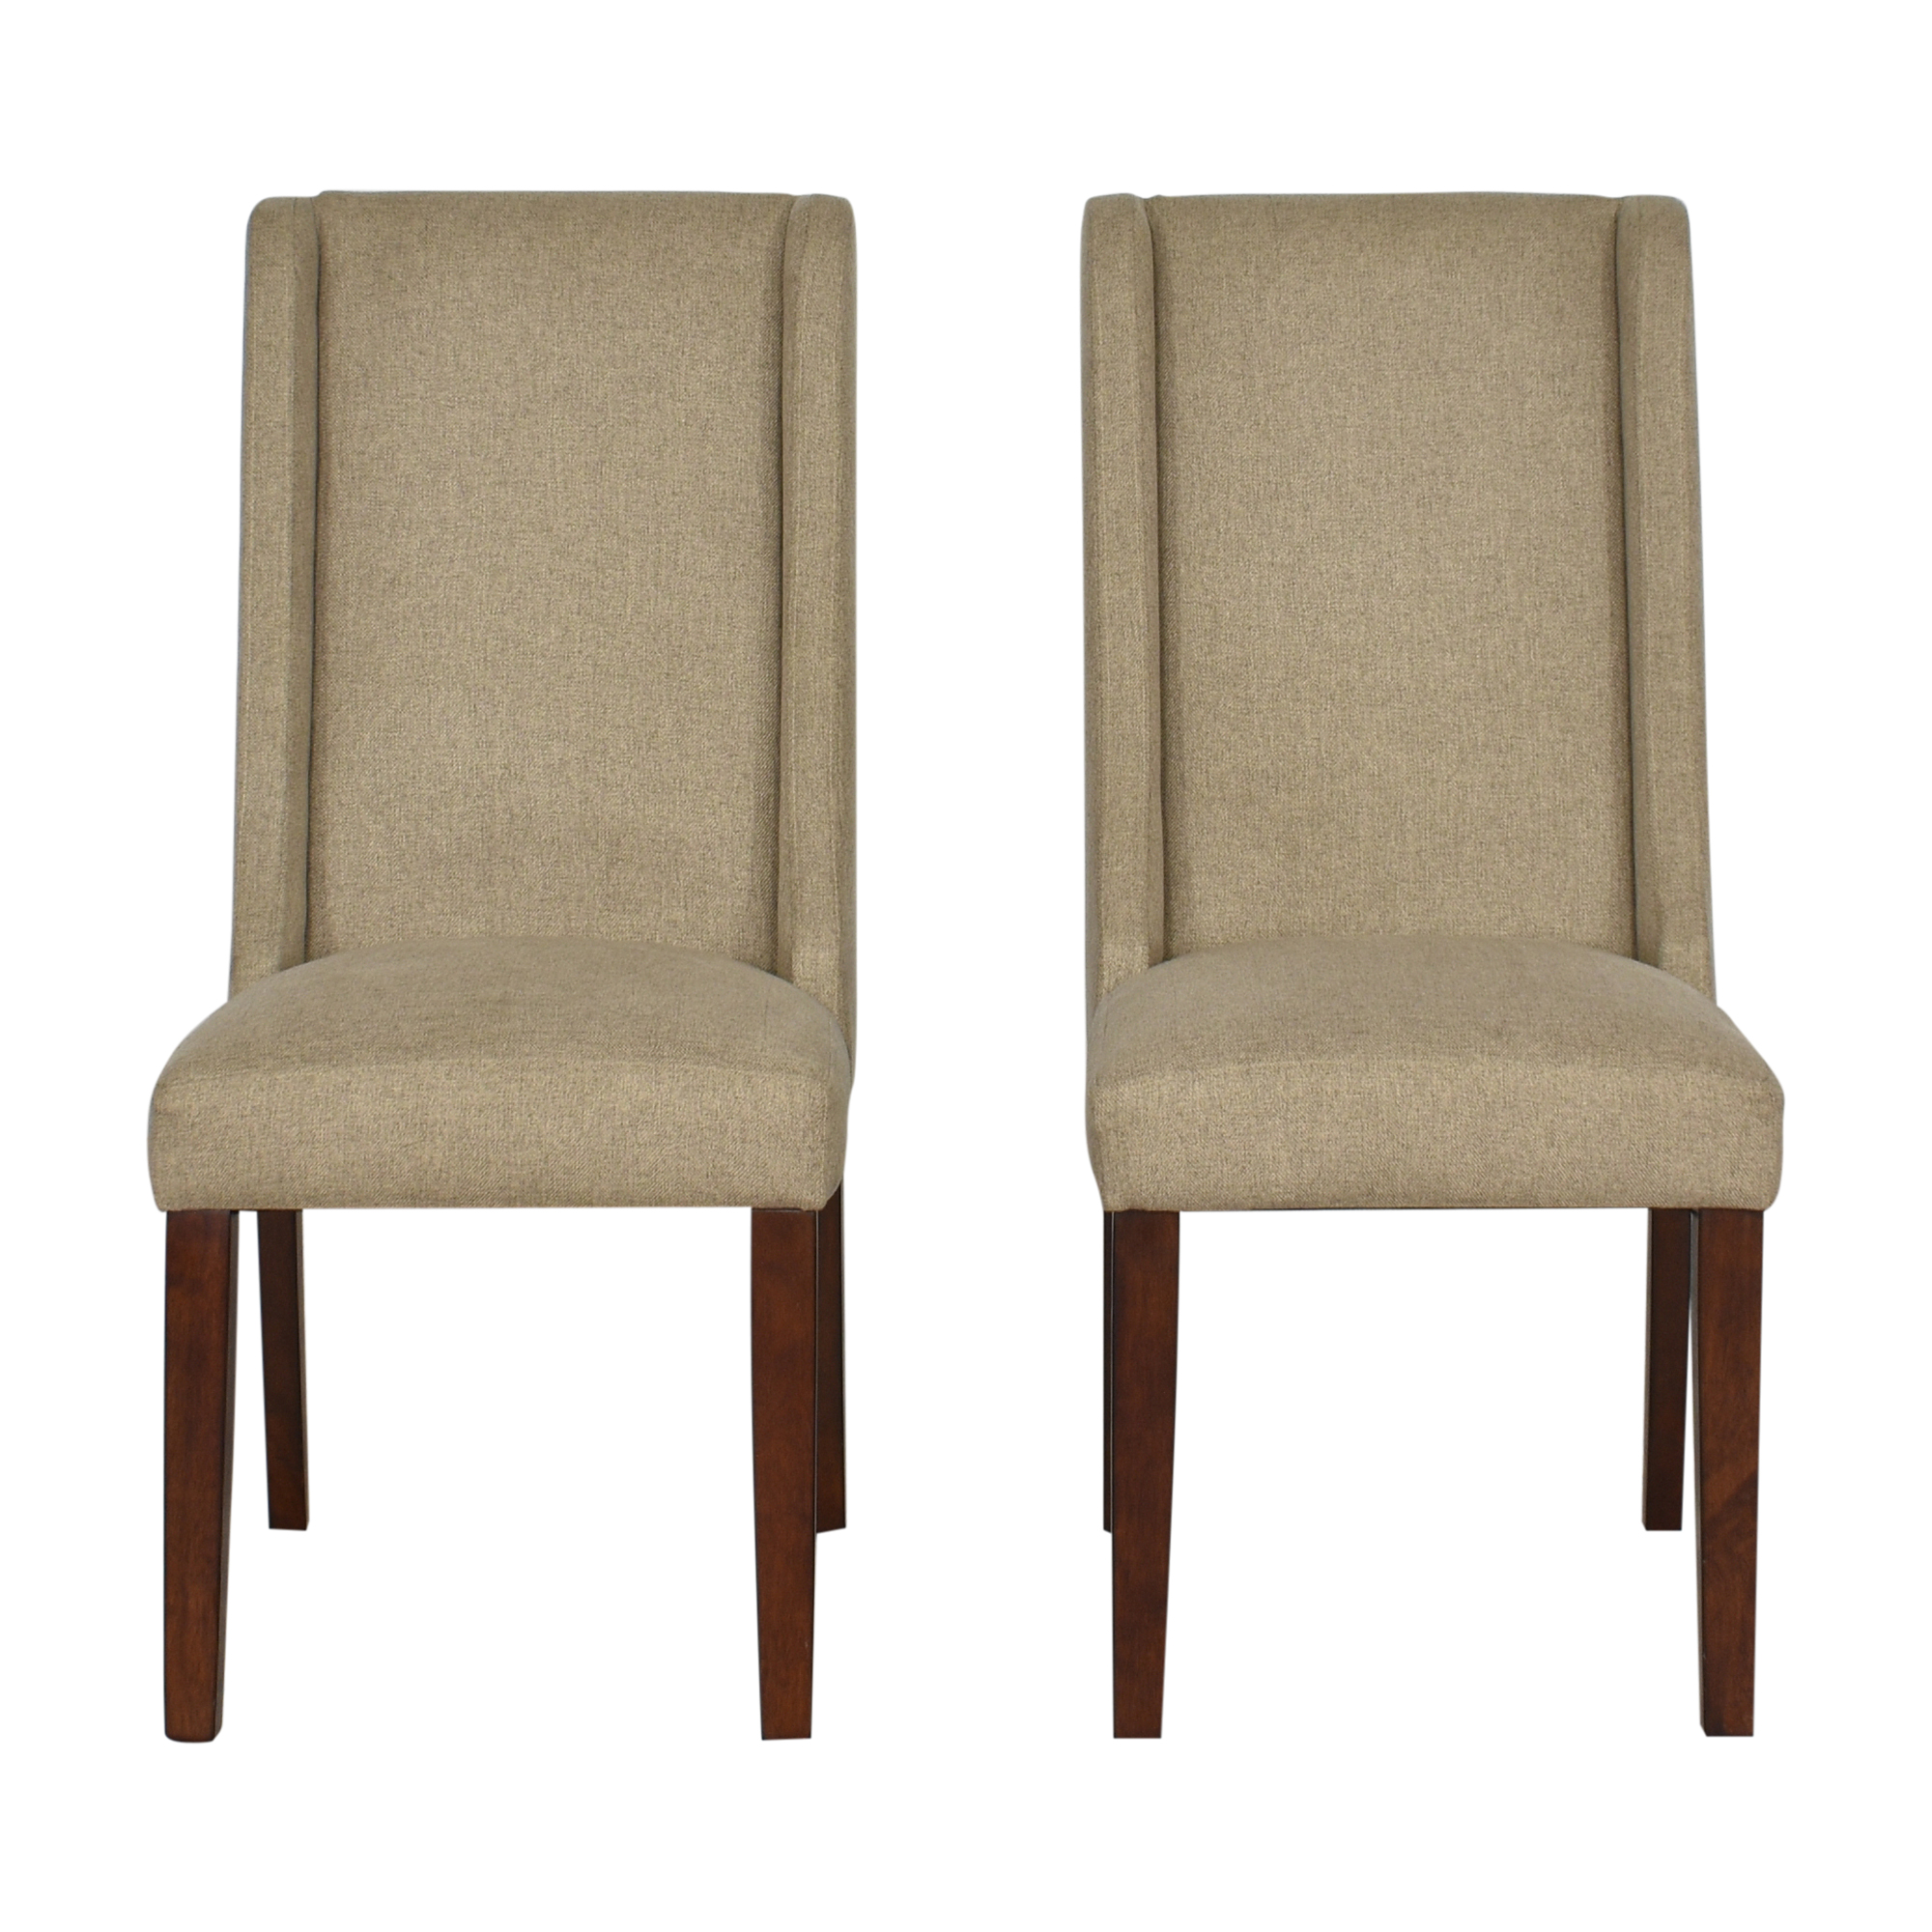 Madison Park Wing Back Dining Chairs / Chairs